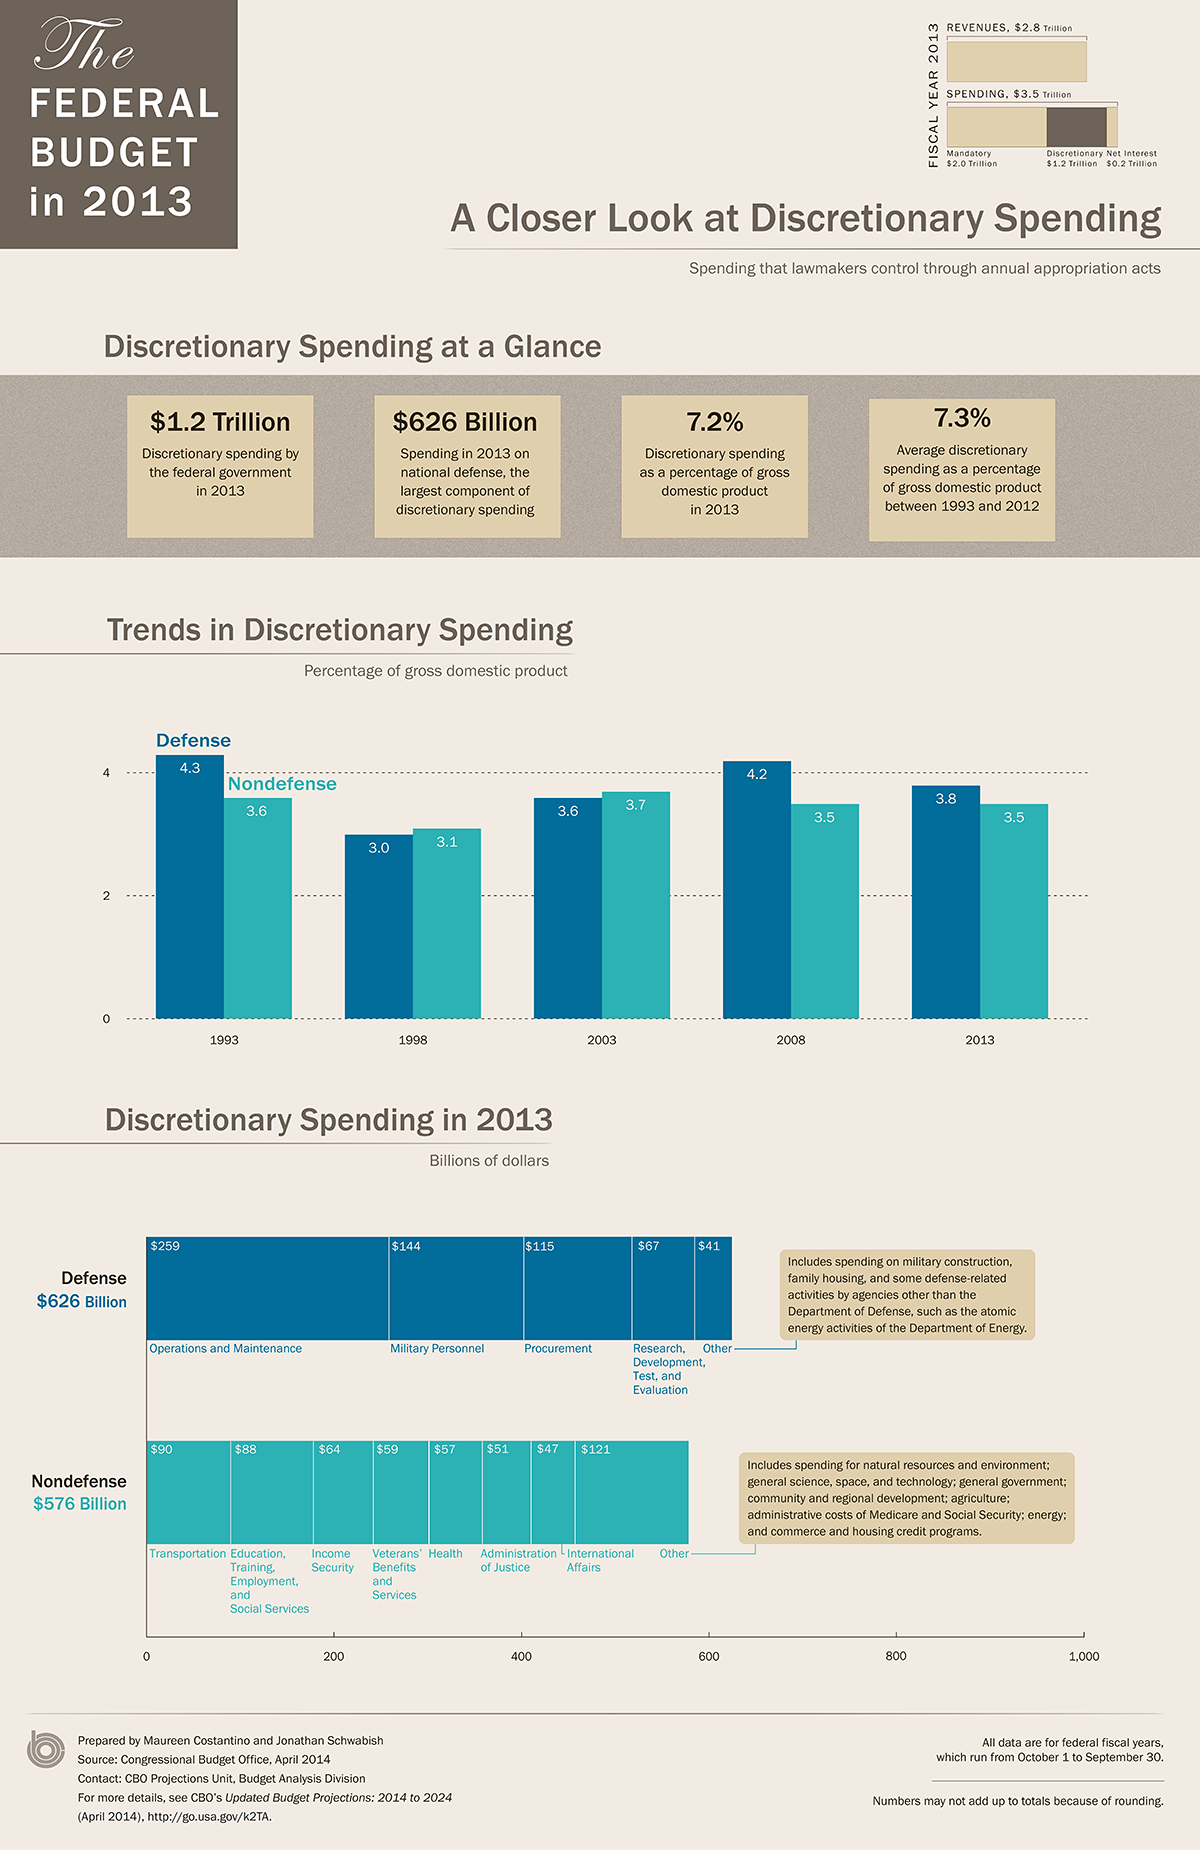 US Discretionary Spending in 2013: An Infographic